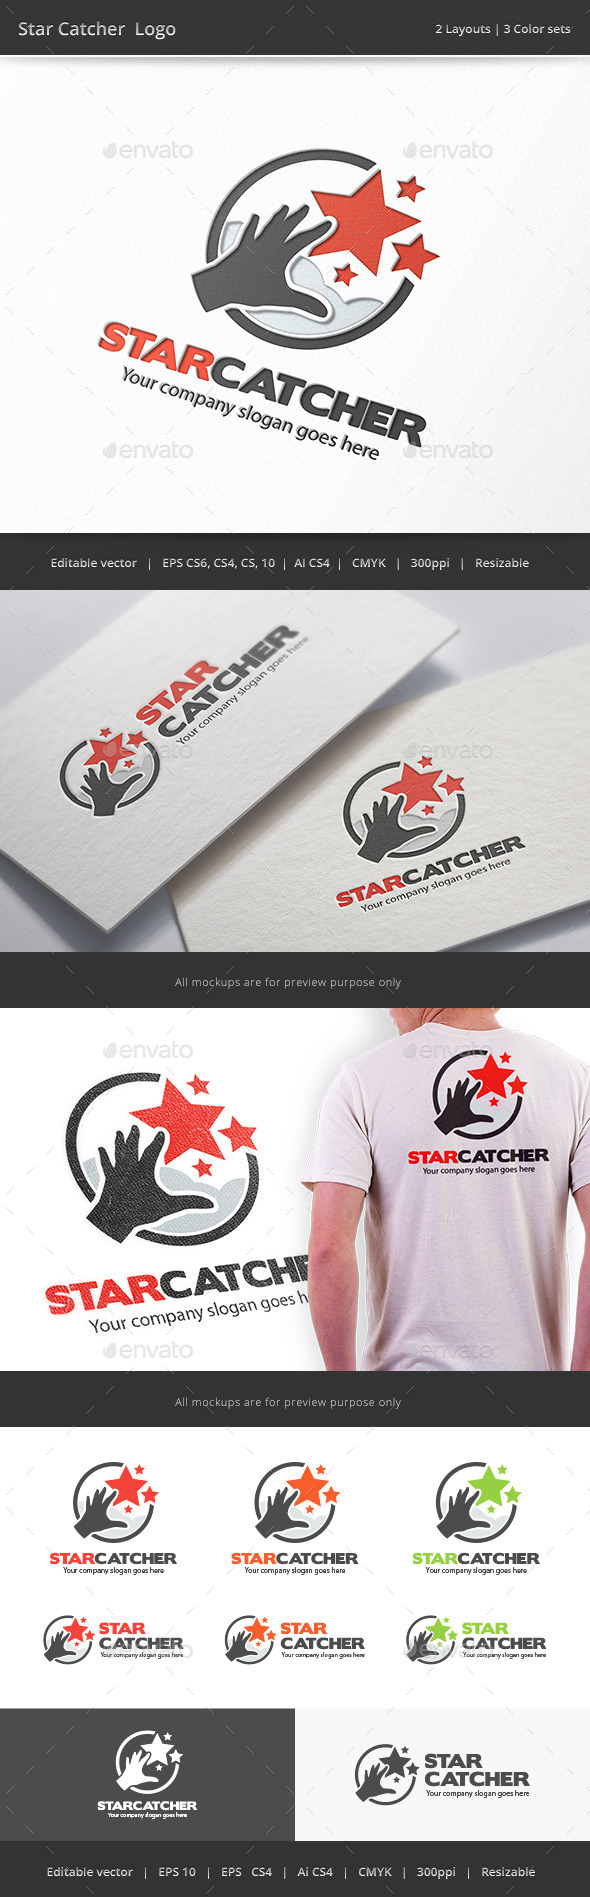 GraphicRiver Star Catcher Logo 9643936